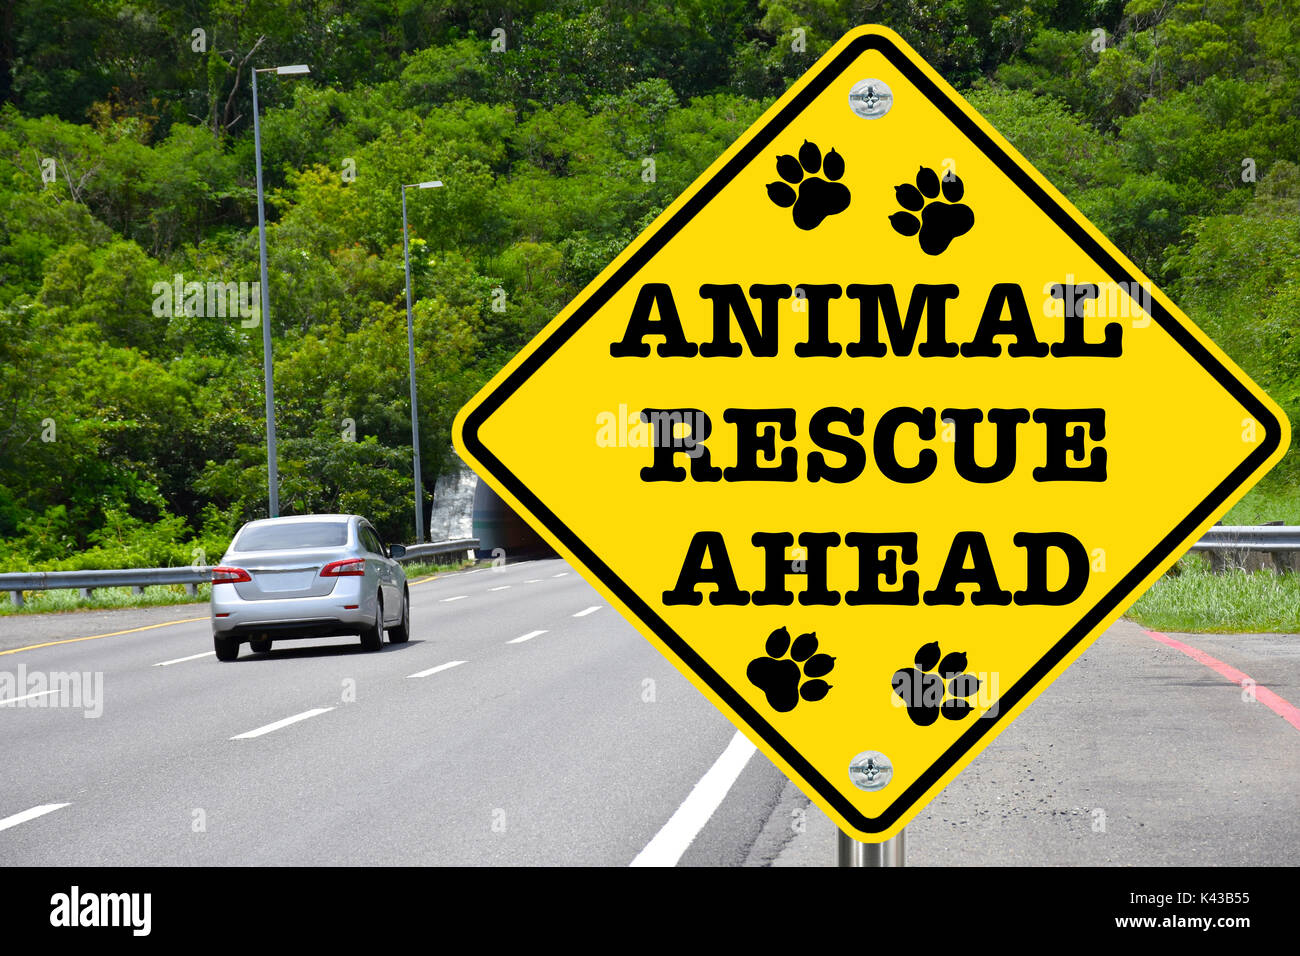 Animal rescue ahead warning sign for dangers that animals also face, and to remind us to lend a hand - Stock Image